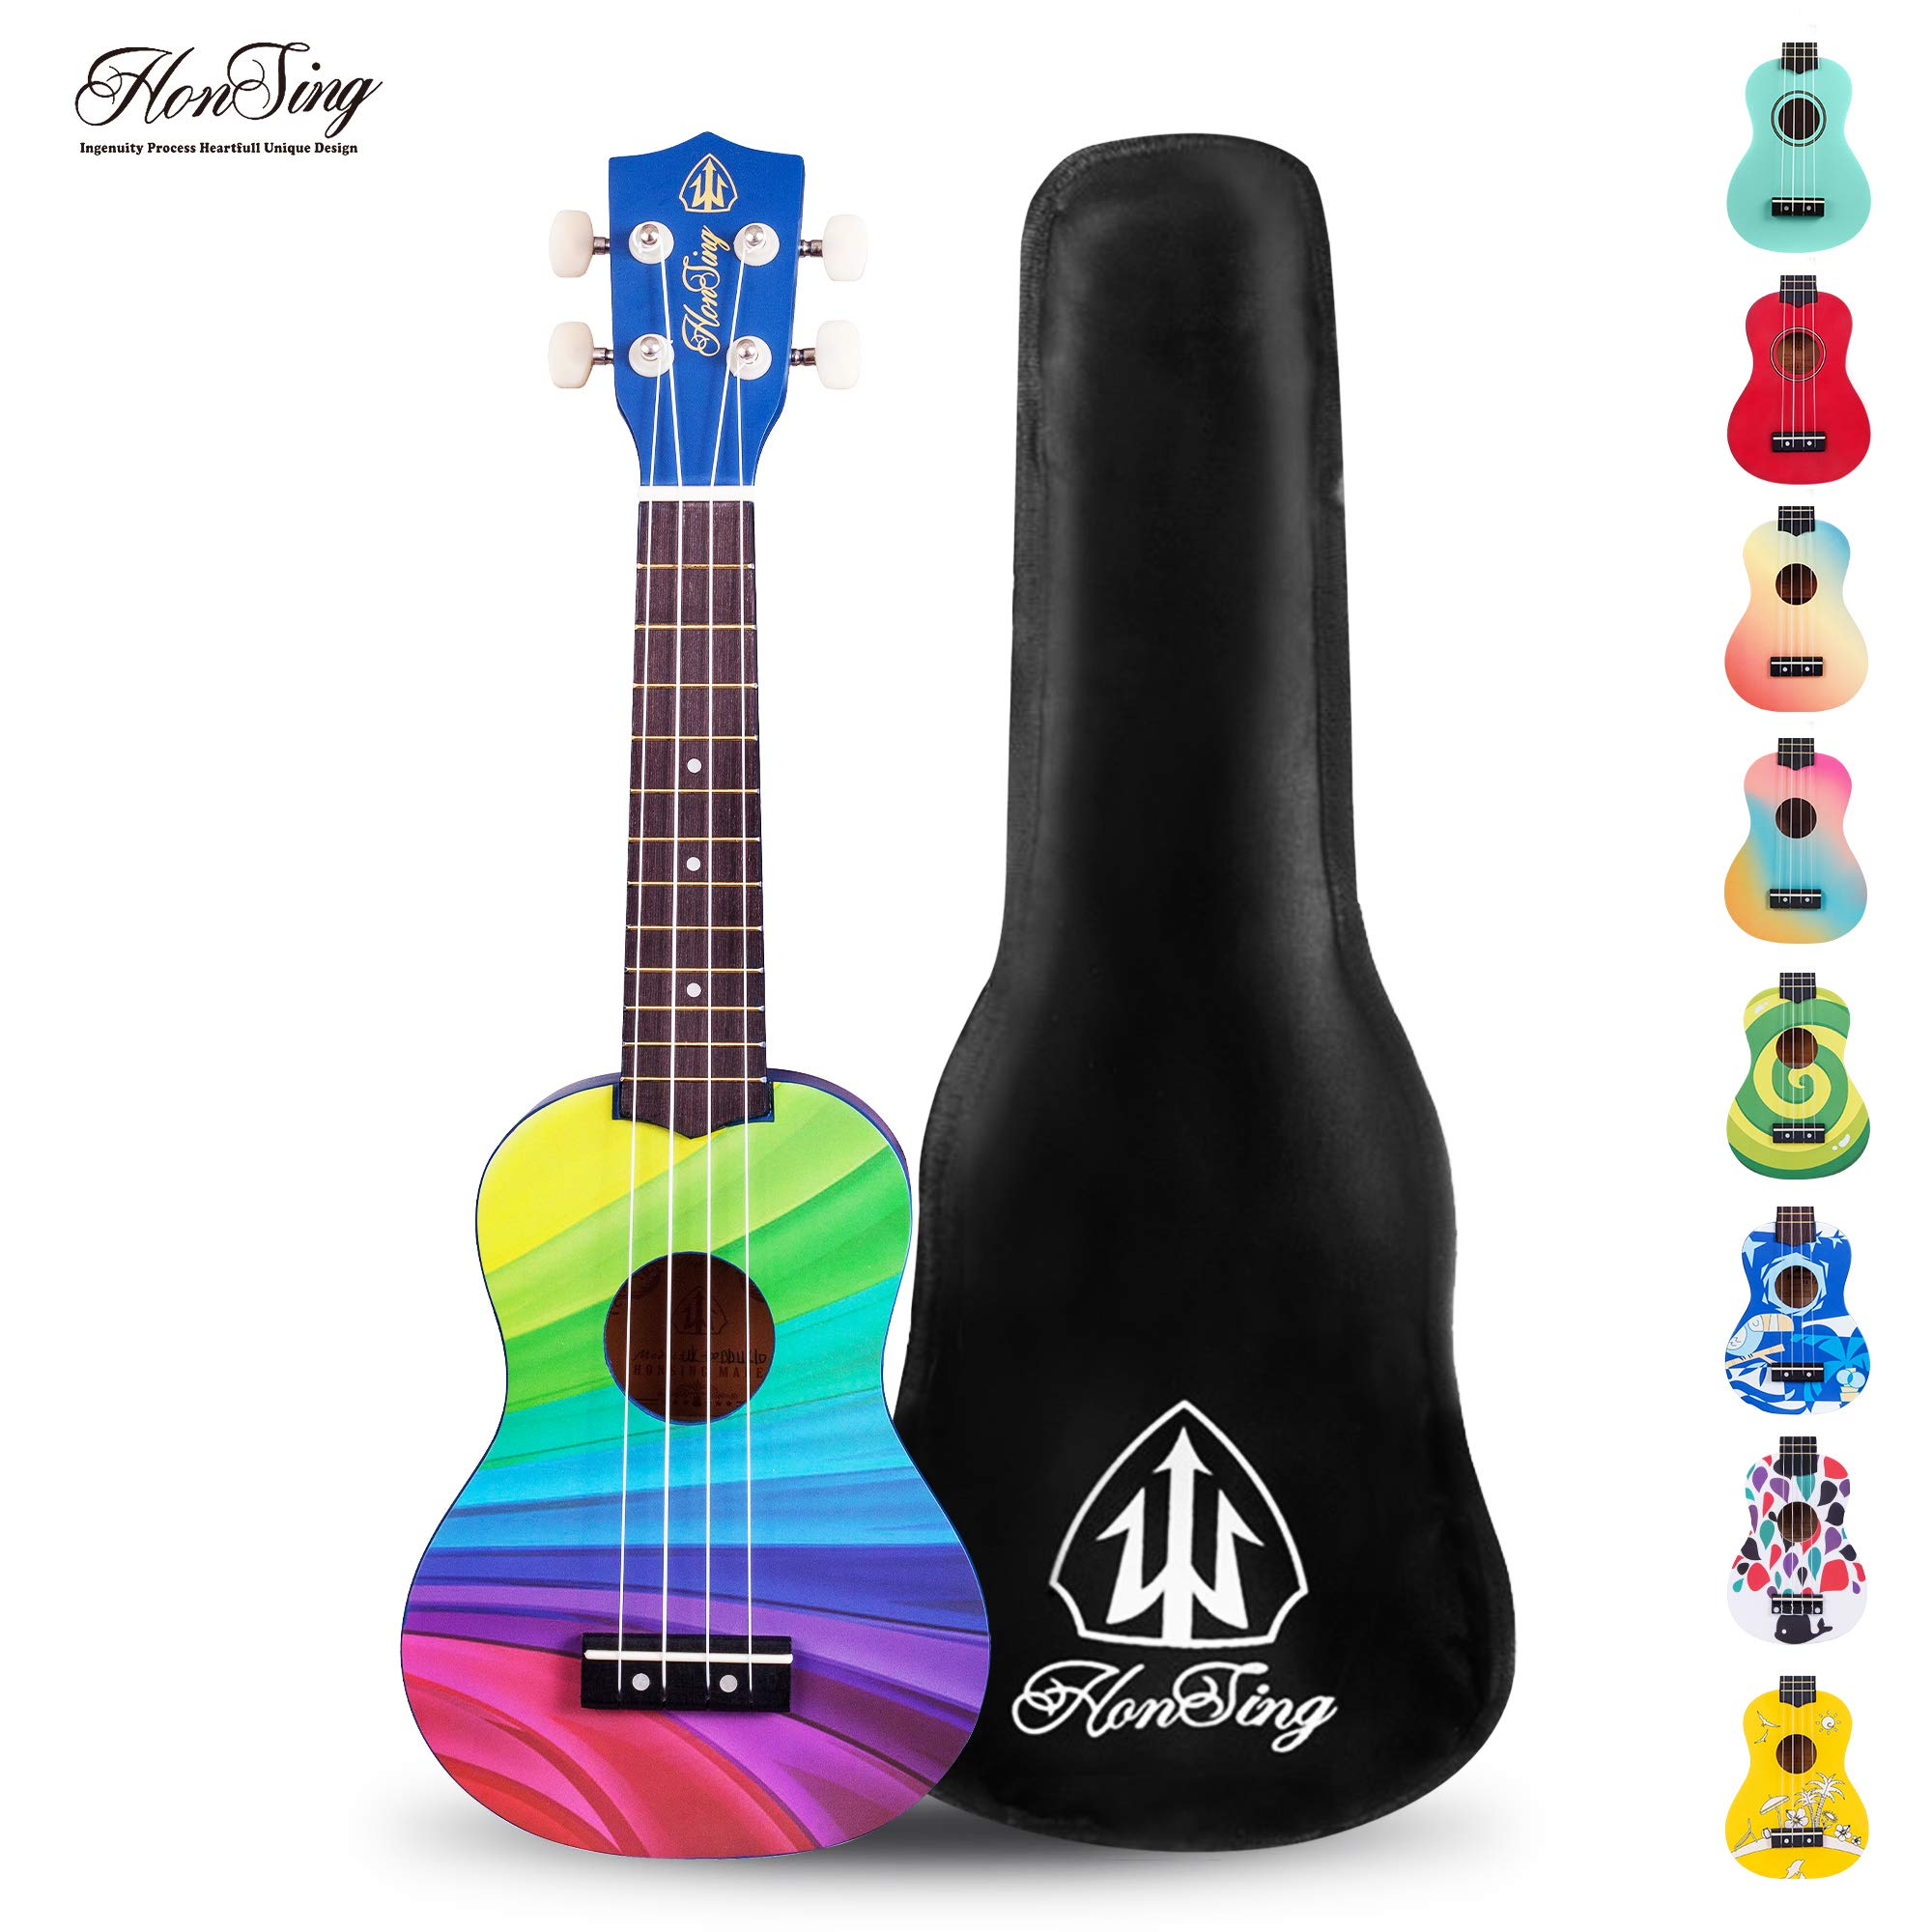 Honsing Soprano Ukulele Beginner Hawaii kids Guitar Uke Basswood 21 inches with Gig Bag- multicolor matte finish by honsing